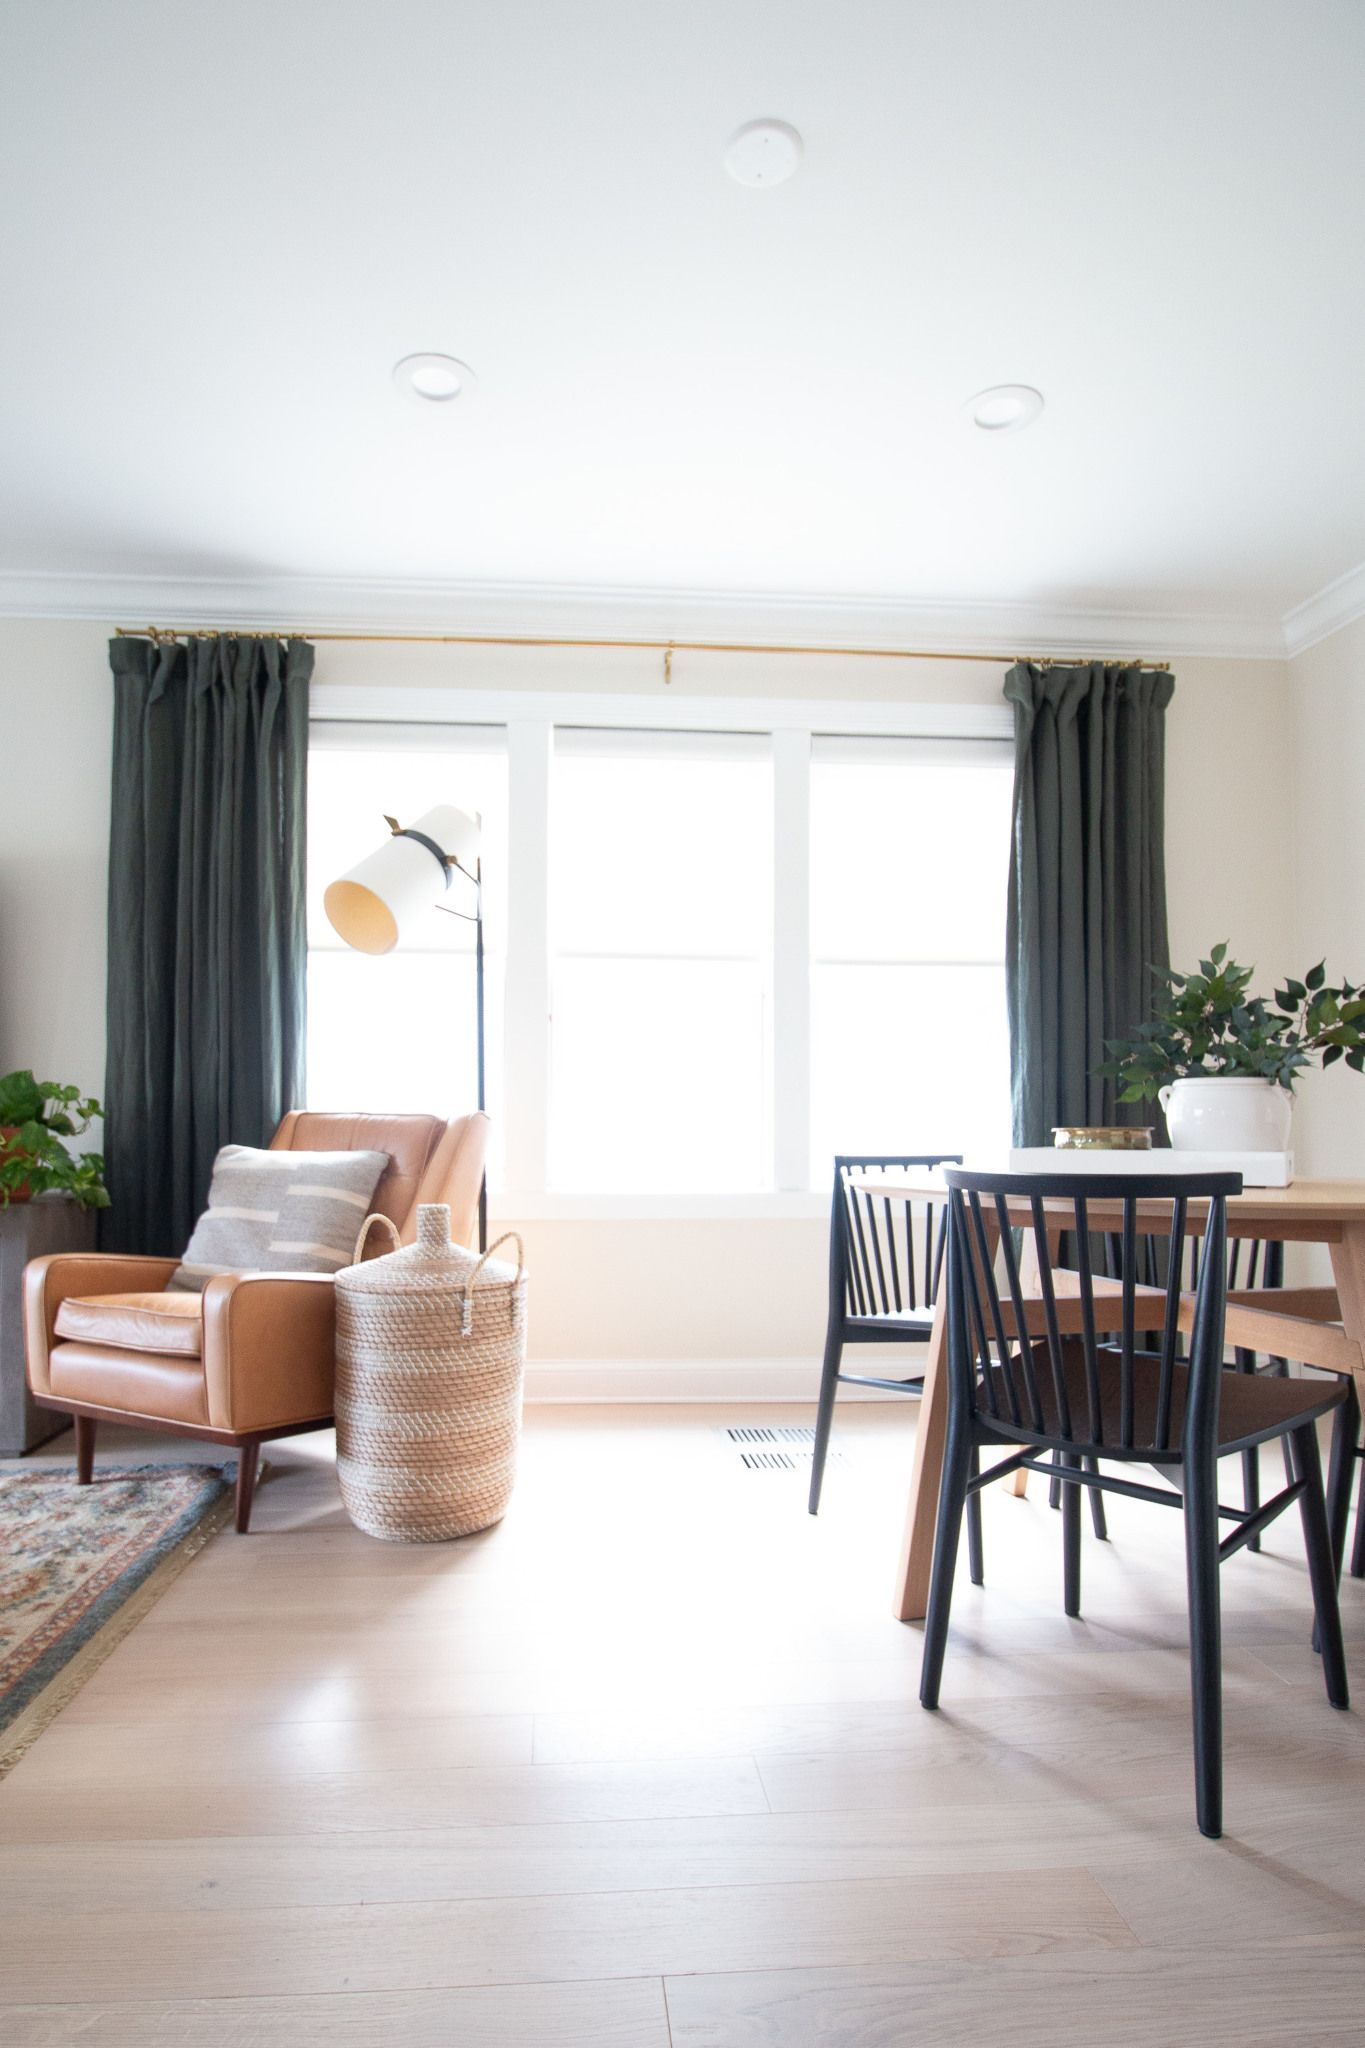 Living Room Windows Design: Our New Living Room Window Shades In 2020 (With Images